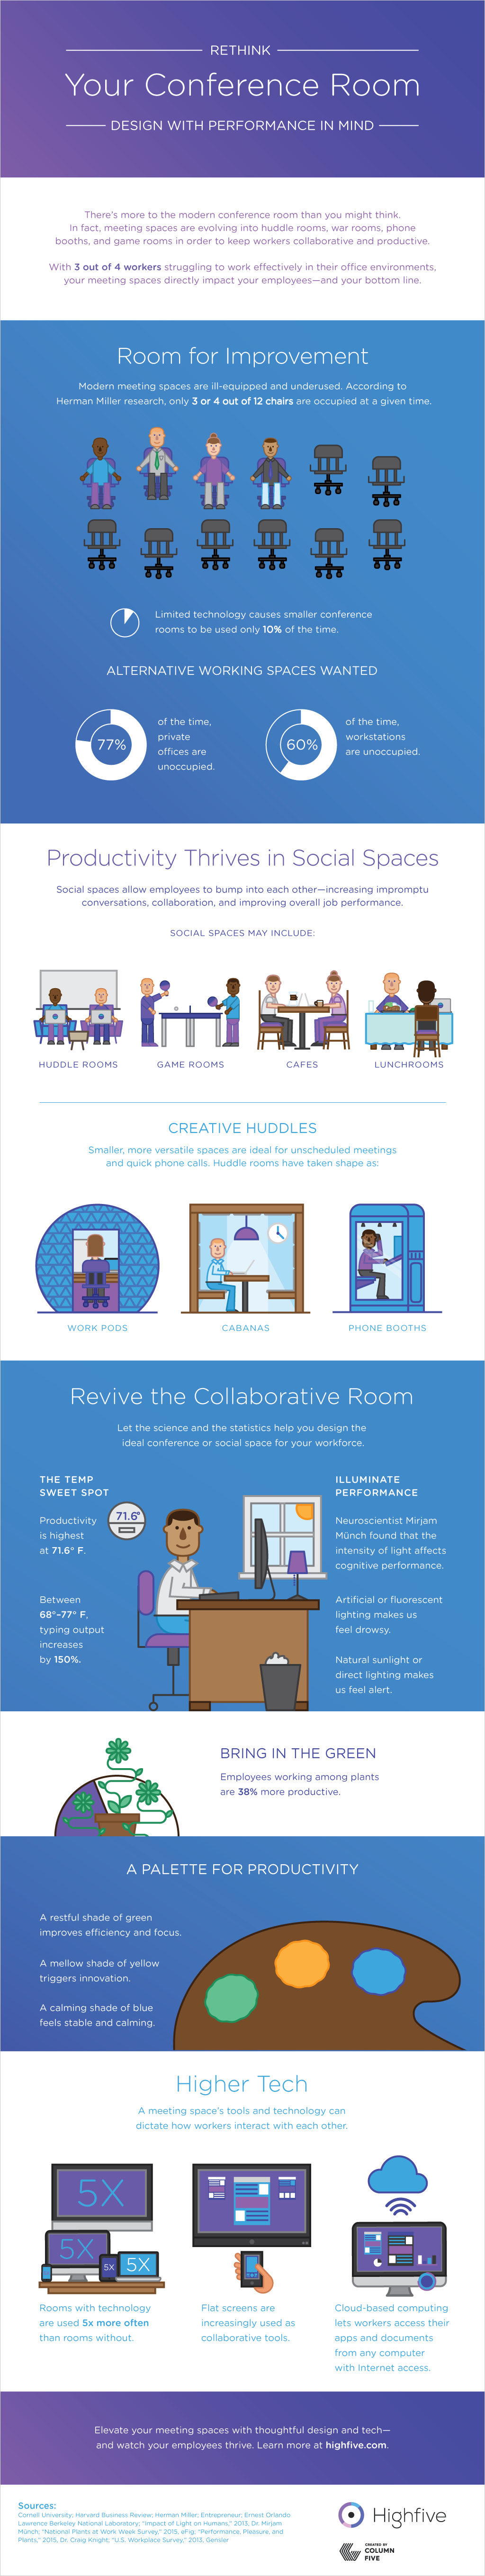 Conference-Room-Infographic